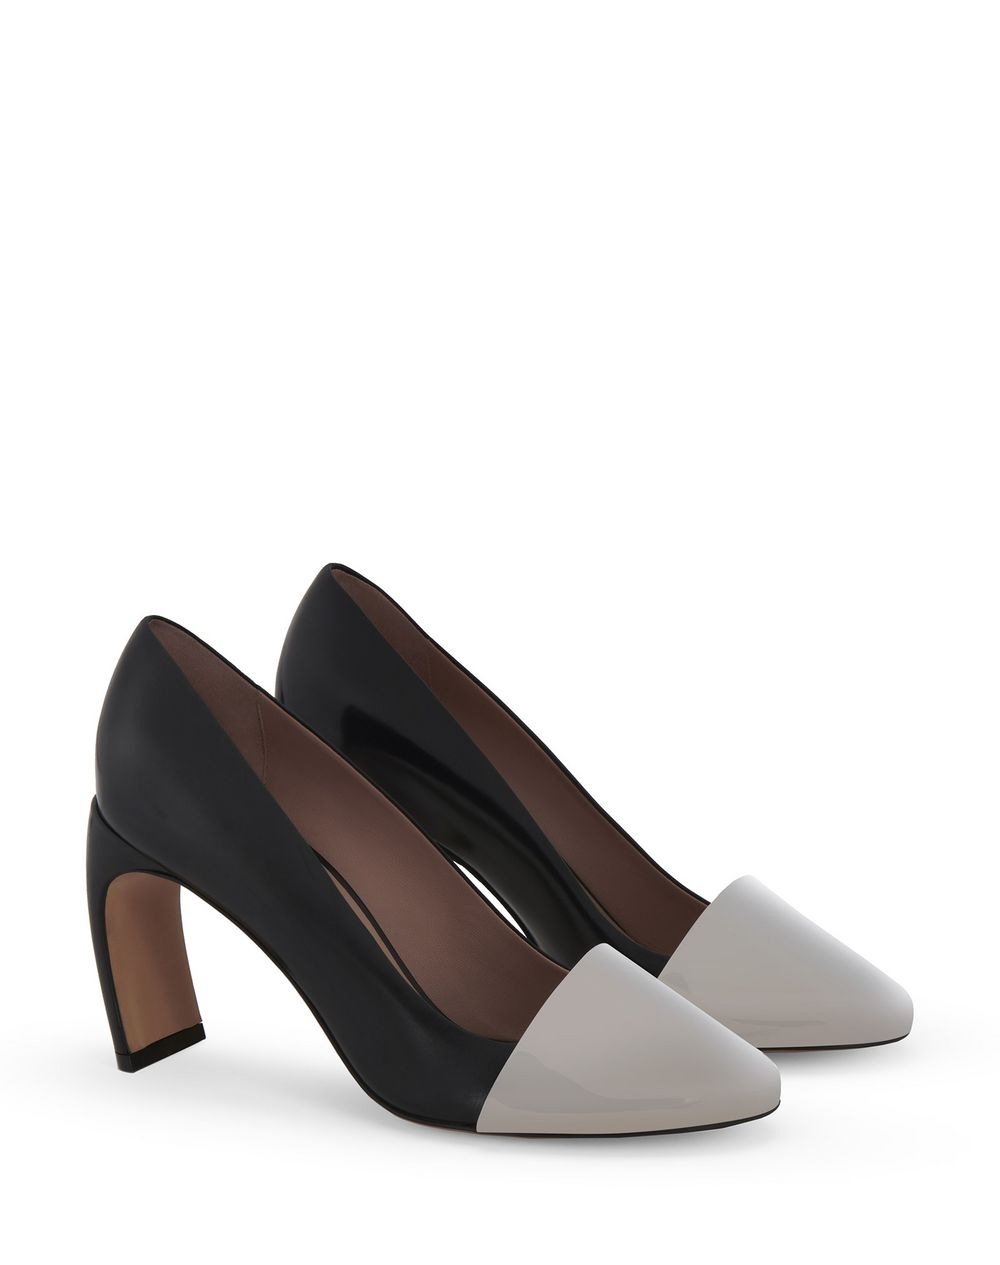 LEATHER J COURT SHOES WITH METALLIC TOE - Lanvin